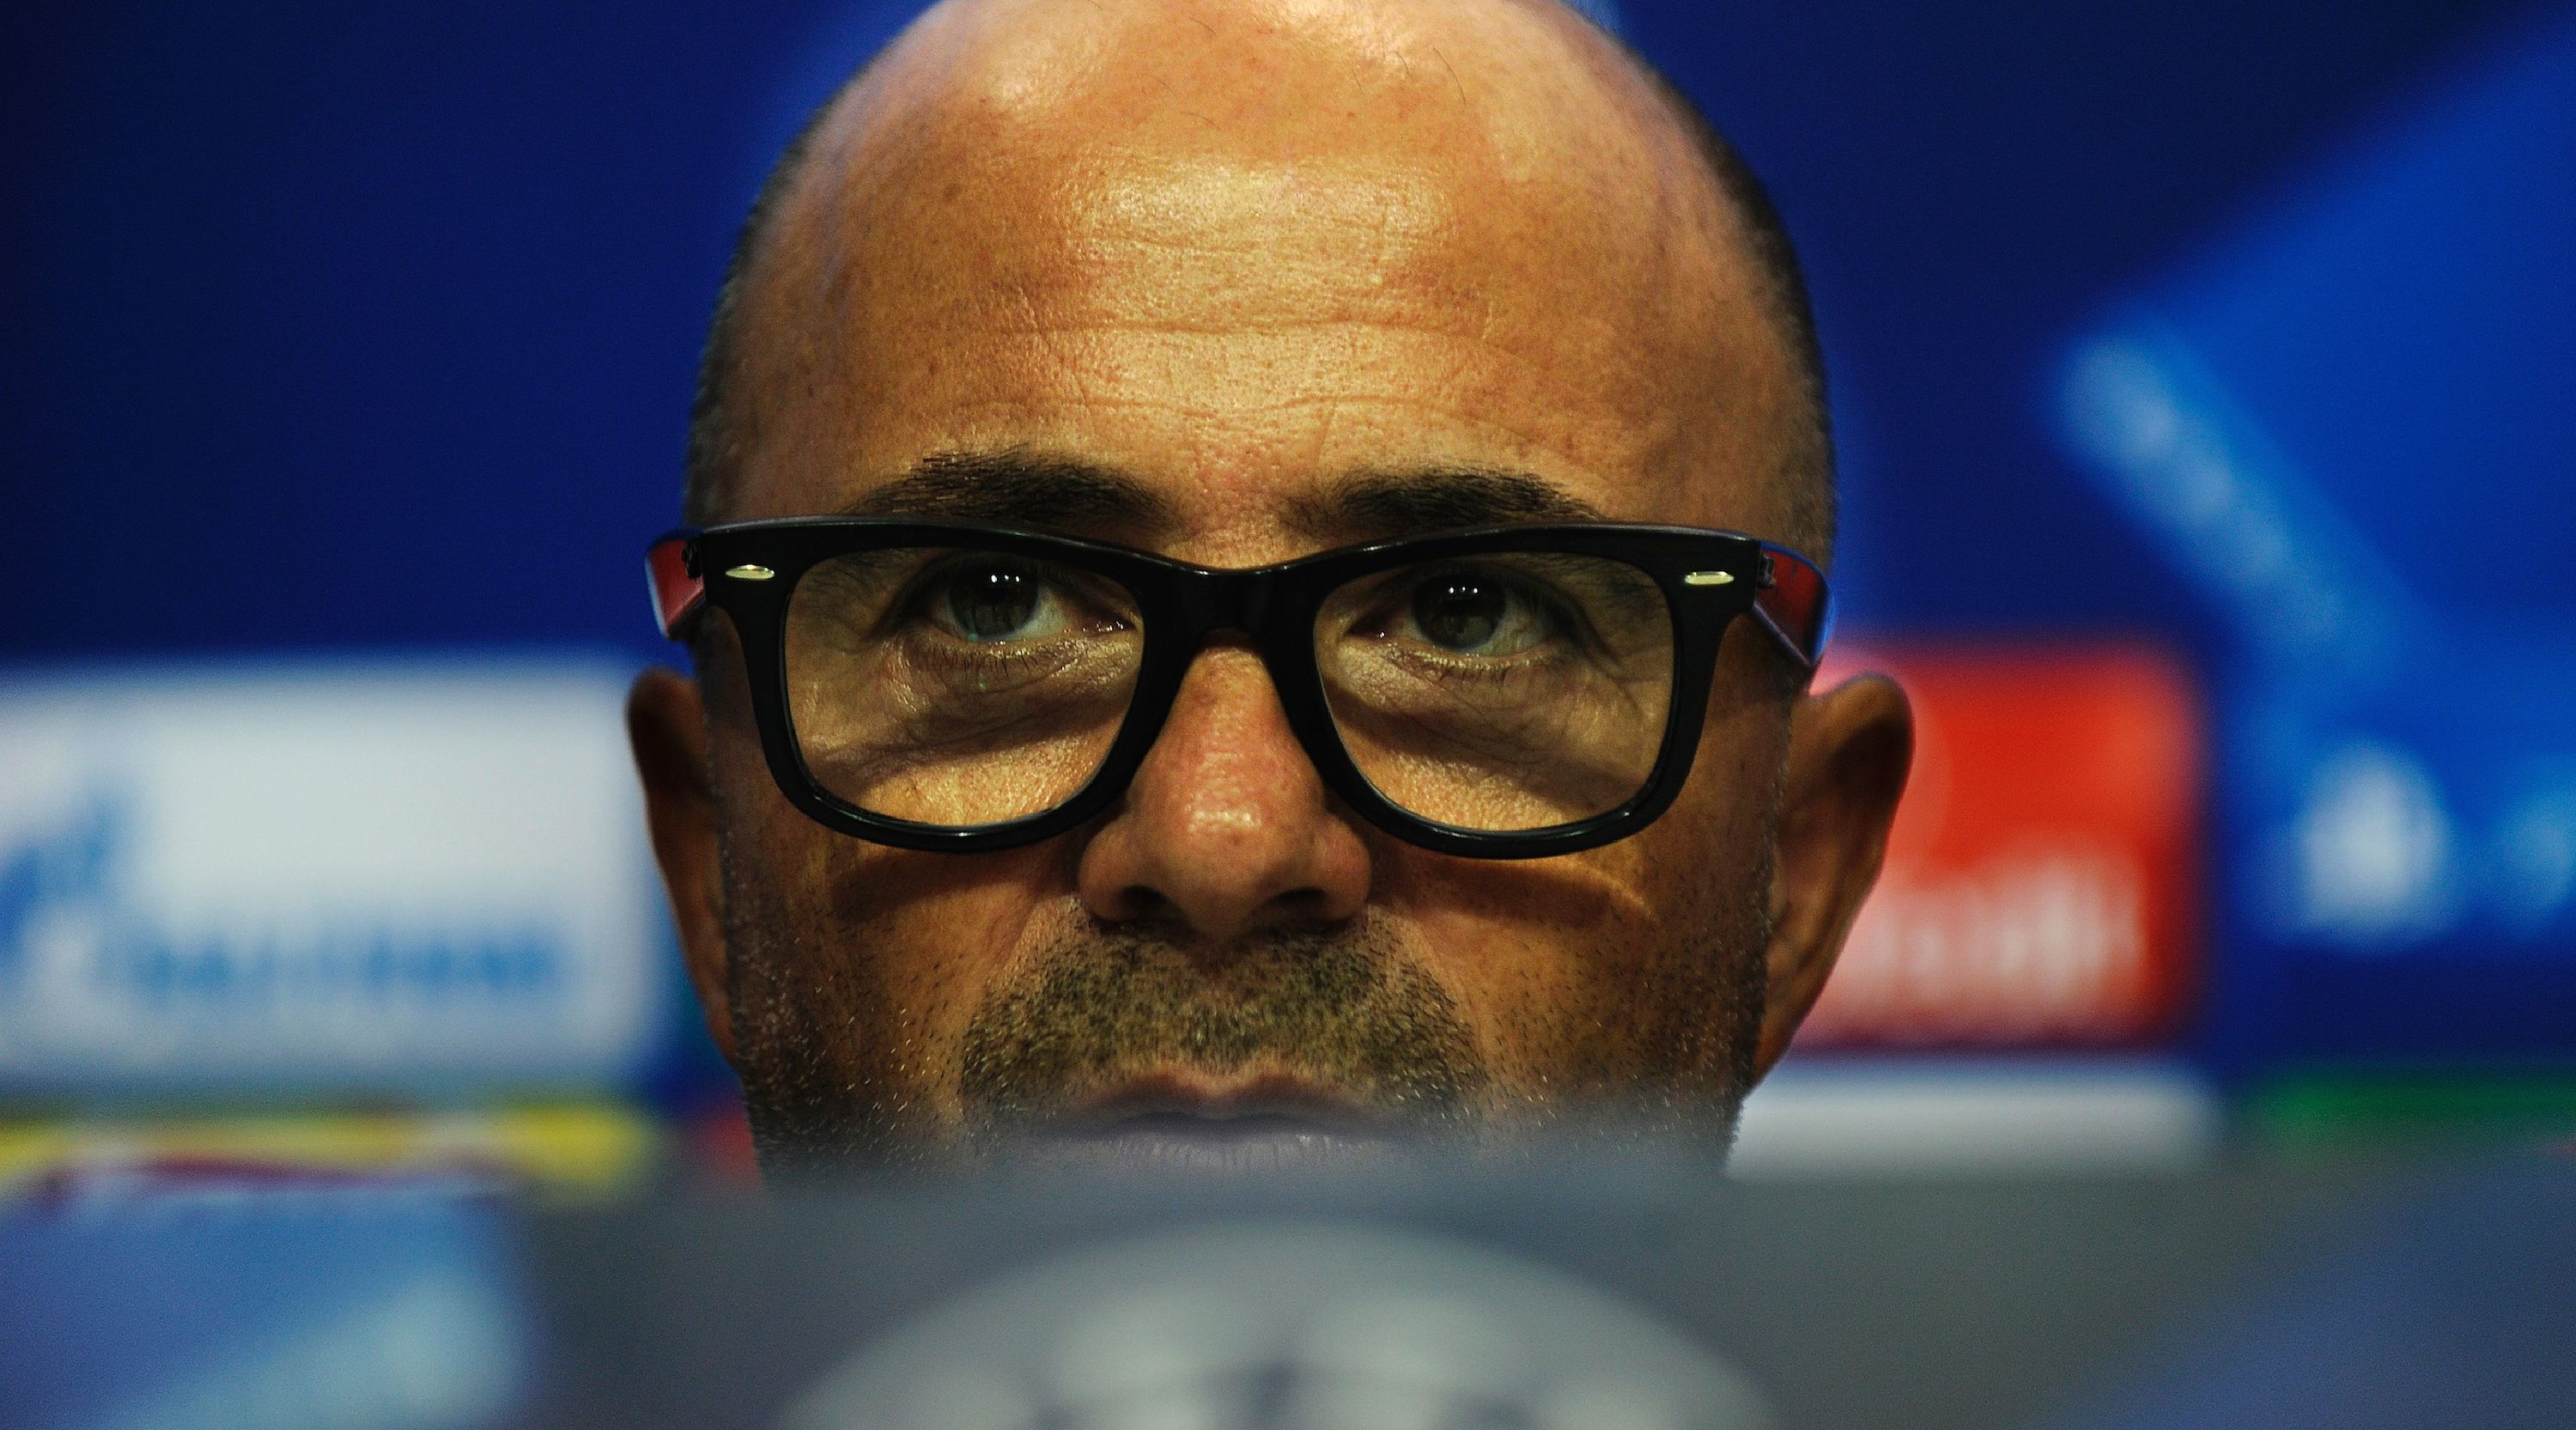 Sevilla's Argentinian coach Jorge Sampaoli gives a press conference at the Sanchez Pizjuan's stadium in Sevilla on November 1, 2016, on the eve of the UEFA Champions League football match Sevilla FC vsvs Dinamo Zagreb. / AFP / CRISTINA QUICLER (Photo credit should read CRISTINA QUICLER/AFP/Getty Images)